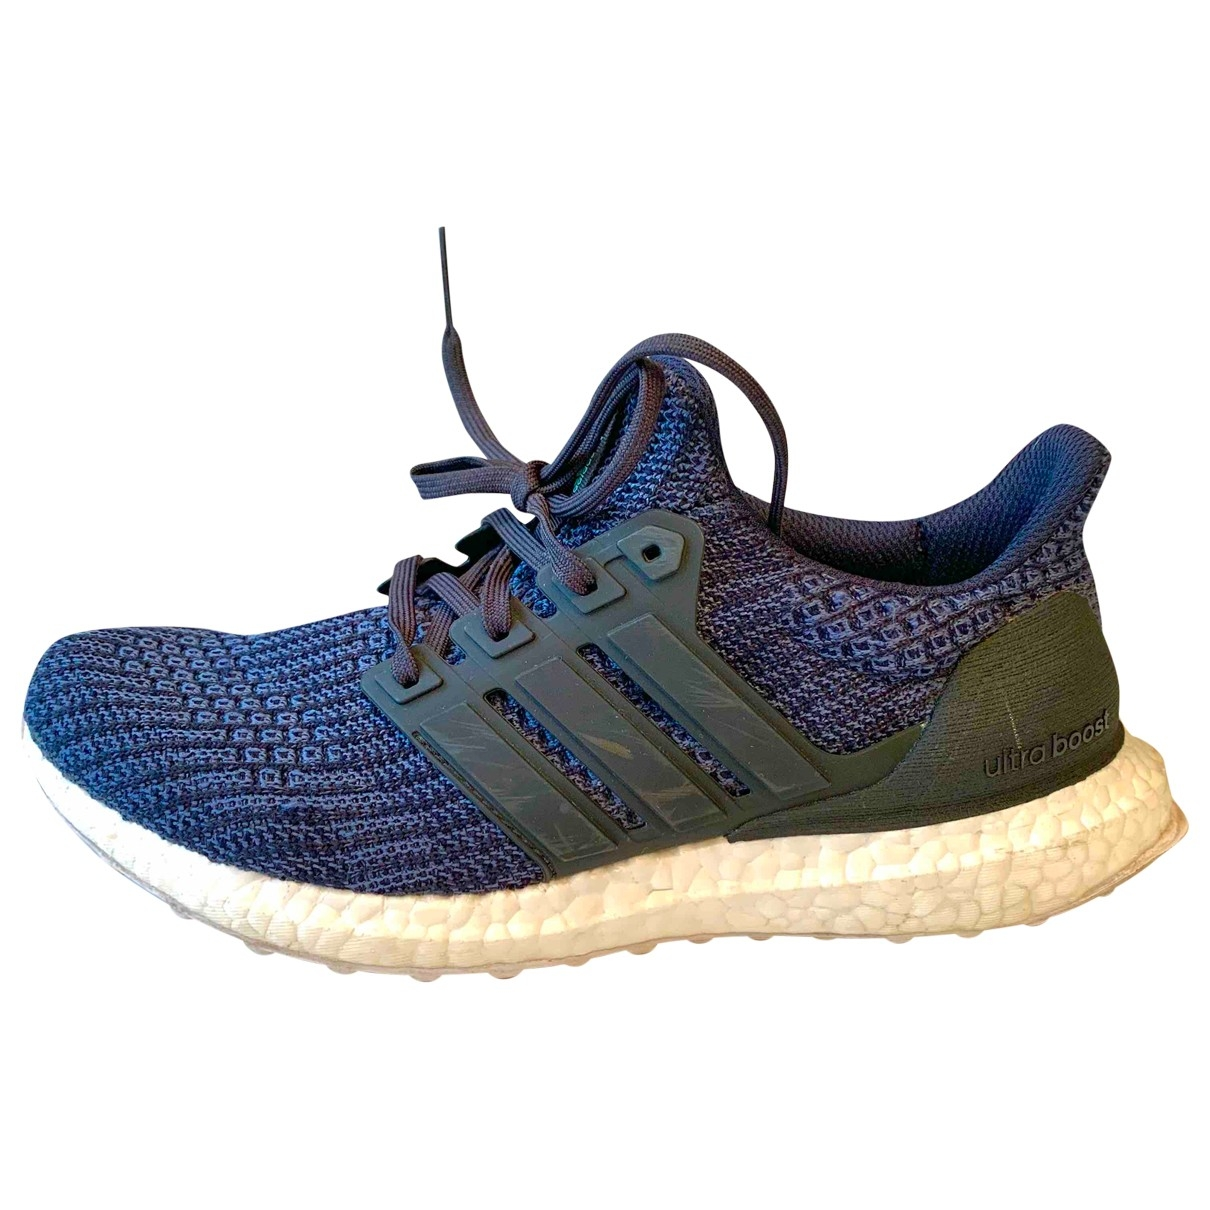 Adidas Ultraboost Blue Cloth Trainers for Women 39.5 IT